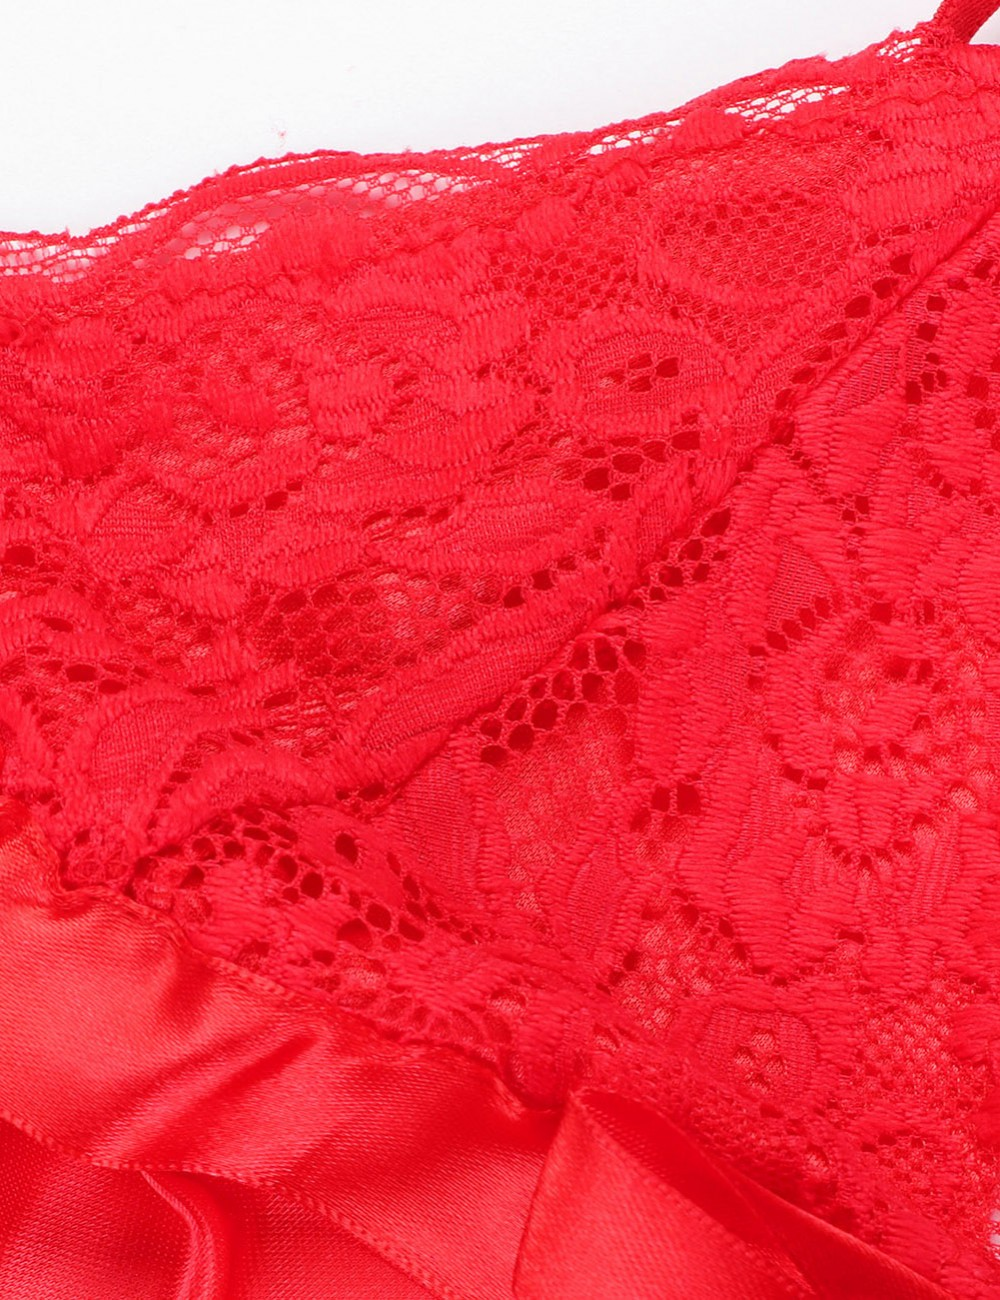 Simplicity Red Chemises Lace Bow Plus Size Spaghetti Strap Fashion Online For Lady